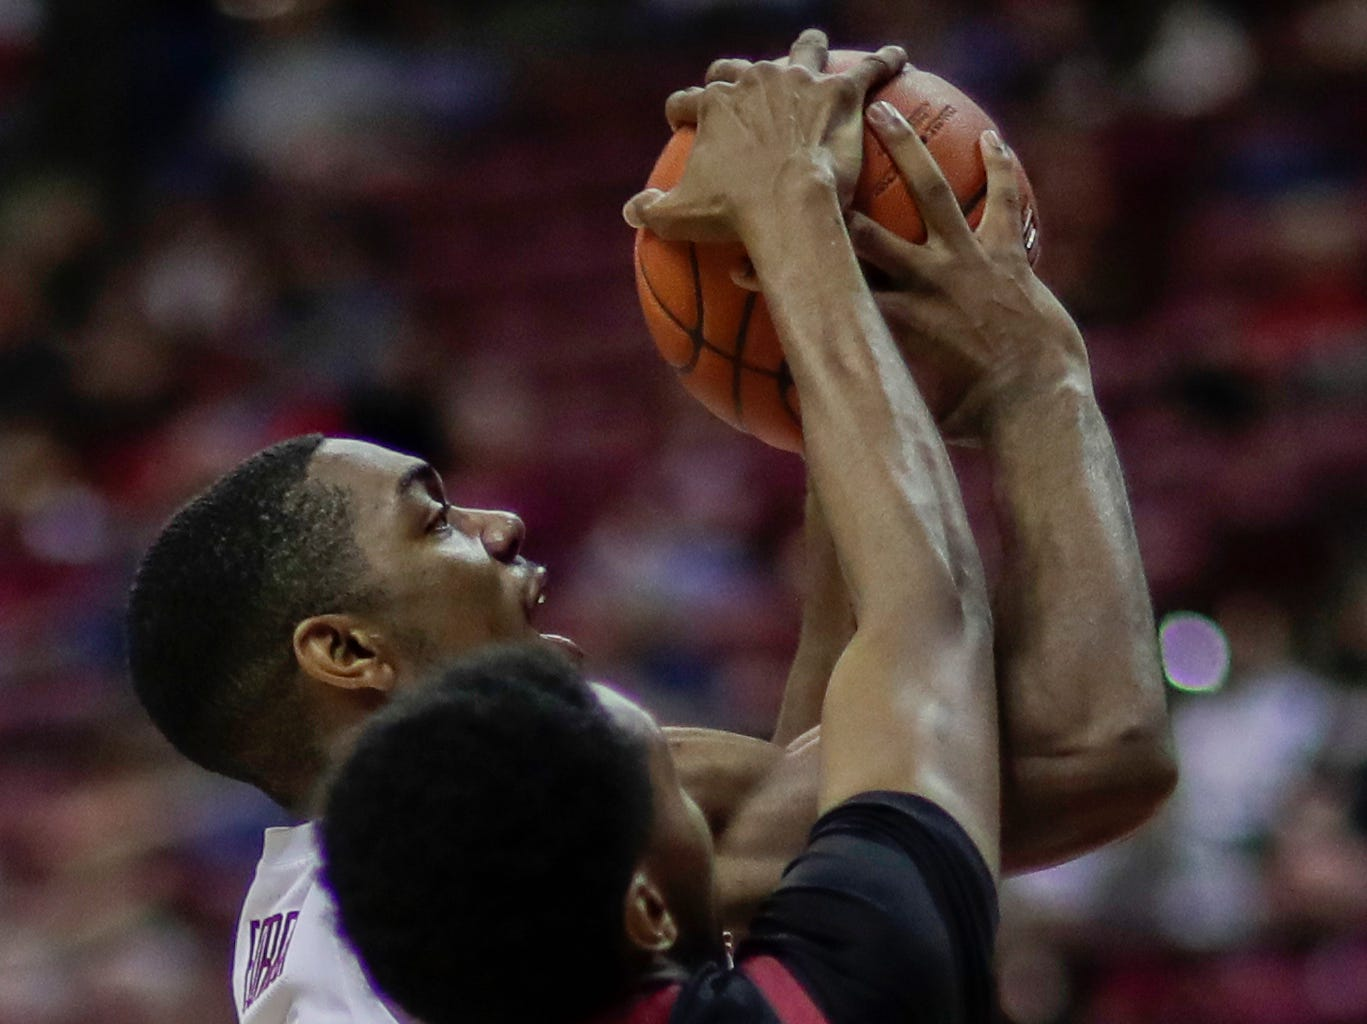 Florida State Seminoles guard Trent Forrest (3) gets his shot blocked by Troy Trojans forward Javan Johnson (1) during a game between FSU and Troy University at Donald L. Tucker Civic Center Monday, Dec. 3, 2018.